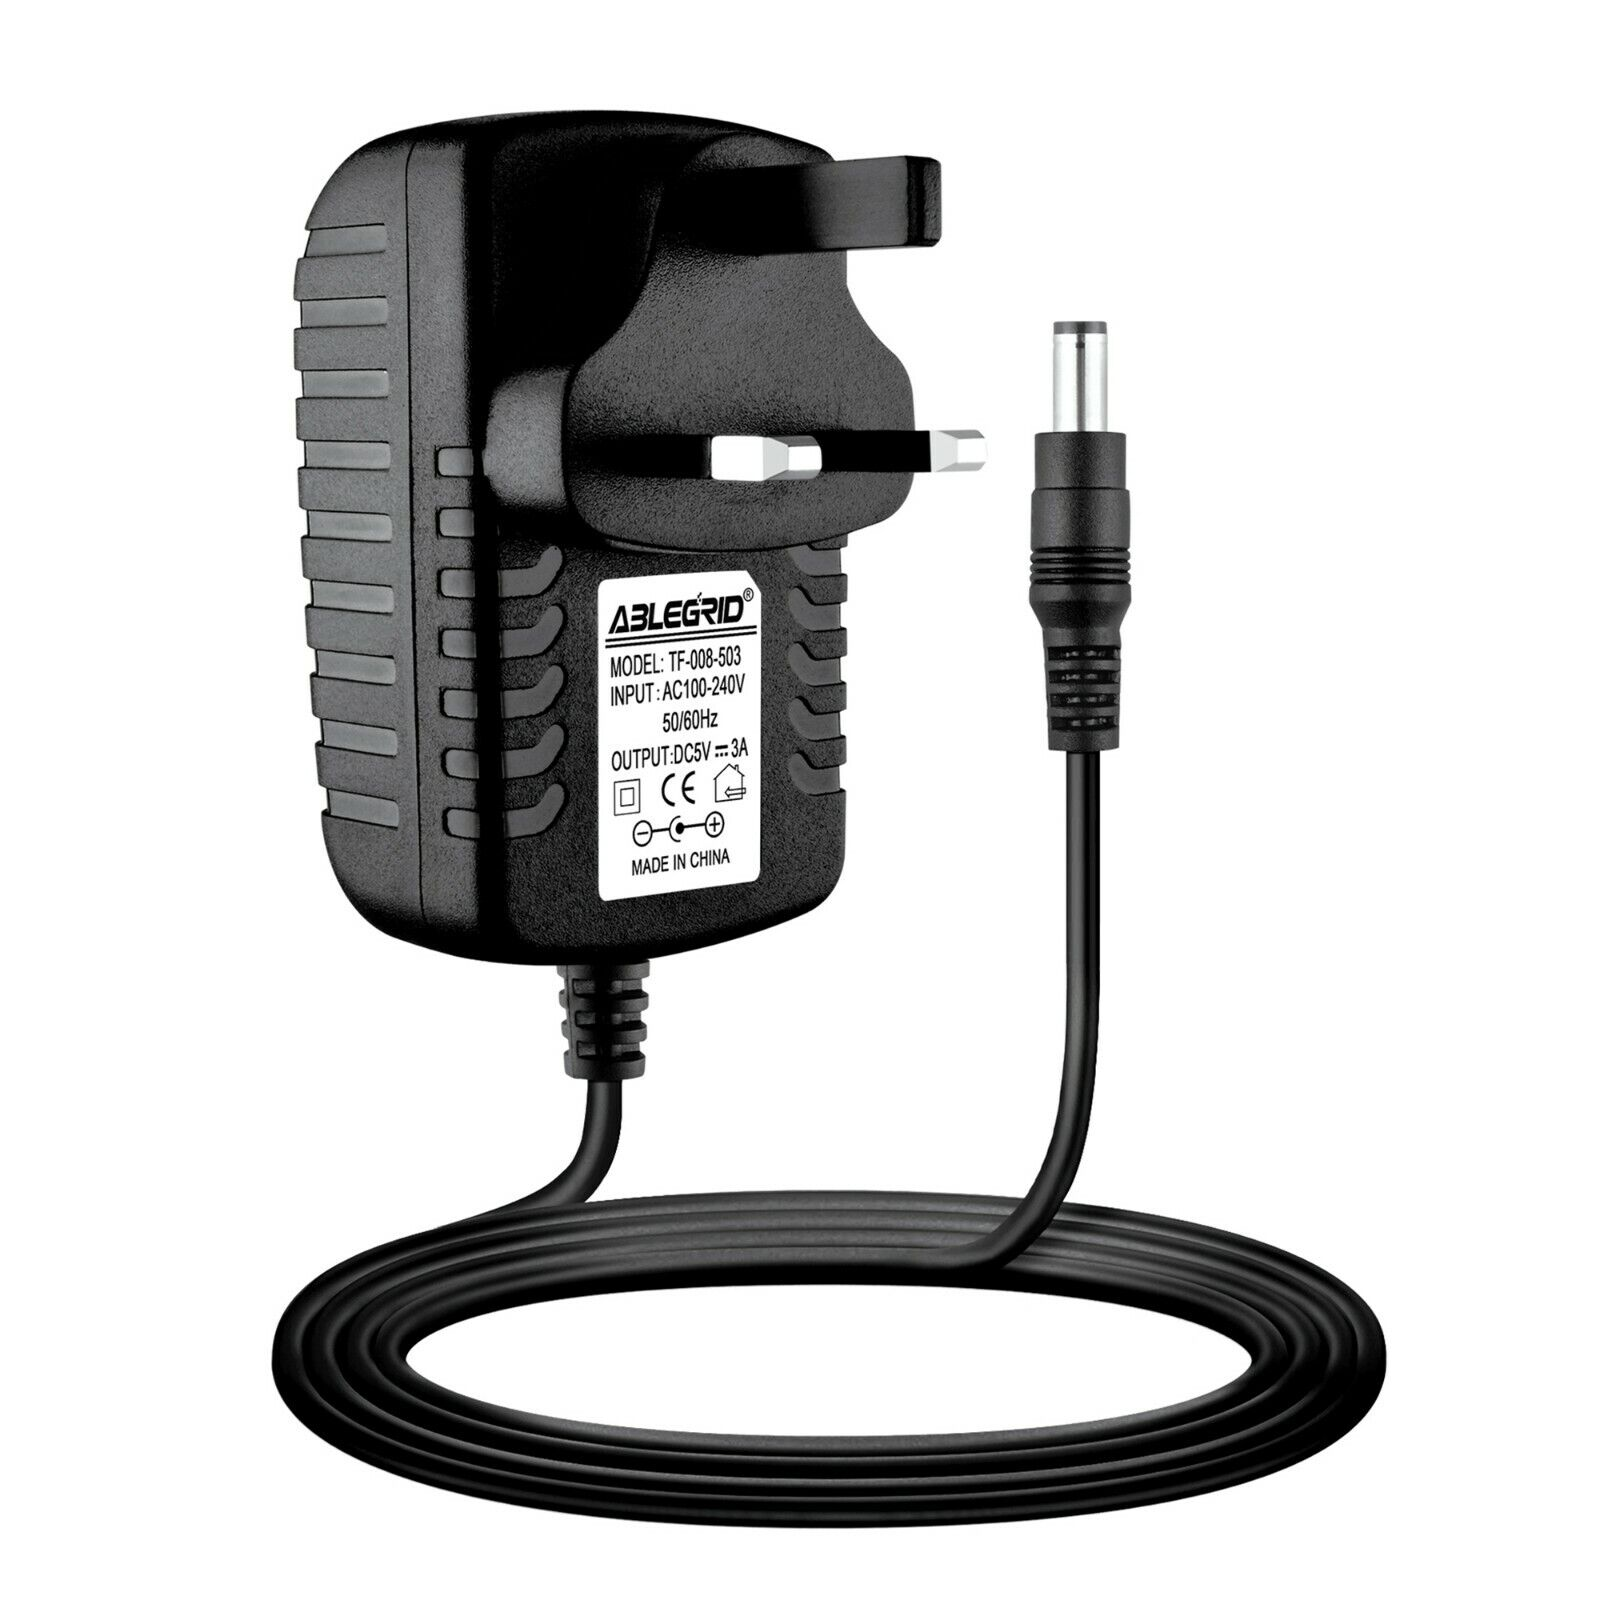 UK 5V 3A AC-DC Power Supply Adapter To Fit Lenovo ideapad MiiX 300-10IBY 80NR